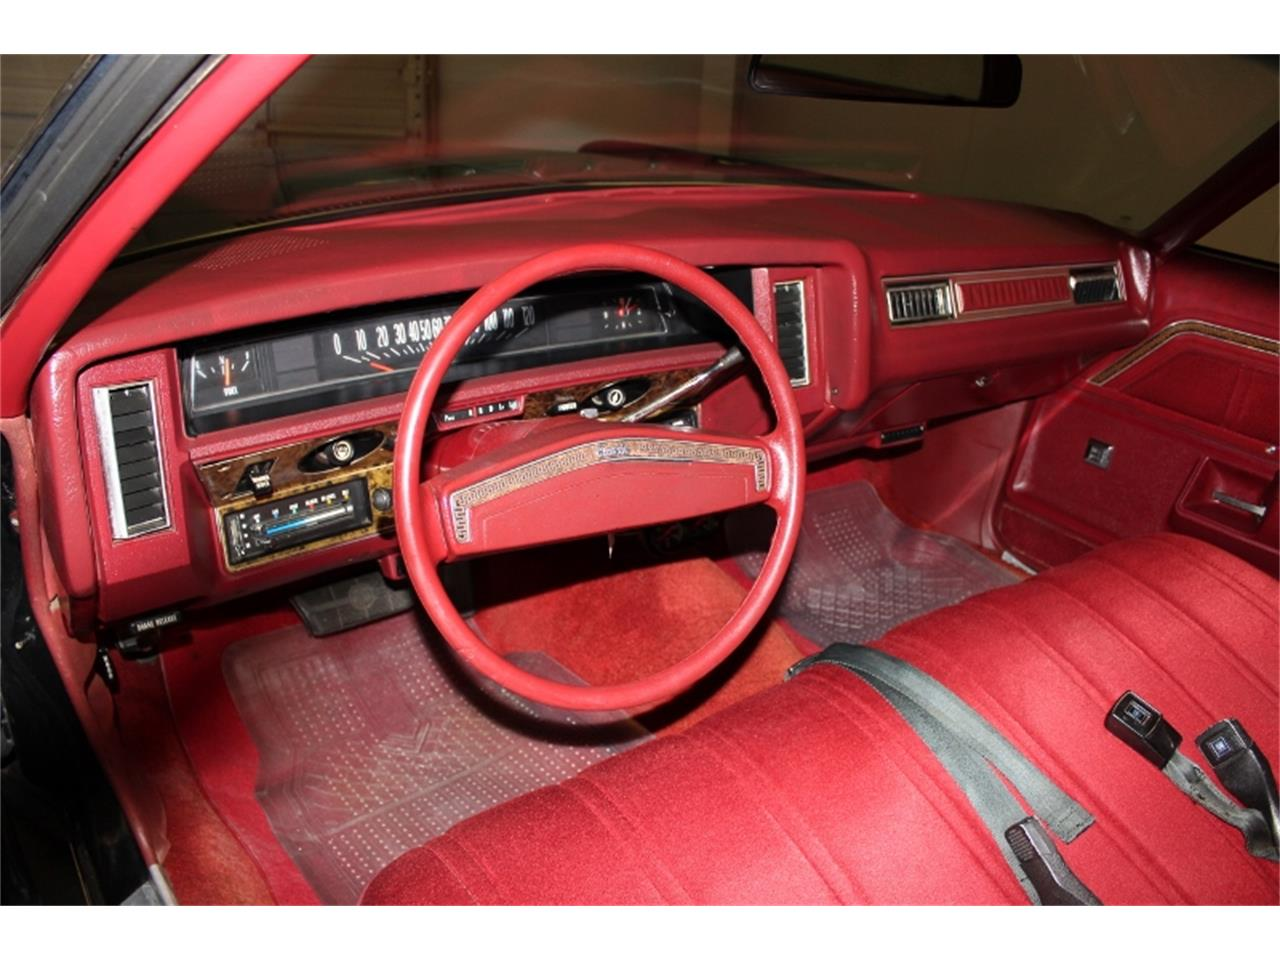 Large Picture of 1974 Chevrolet Caprice - $28,500.00 - JUO8